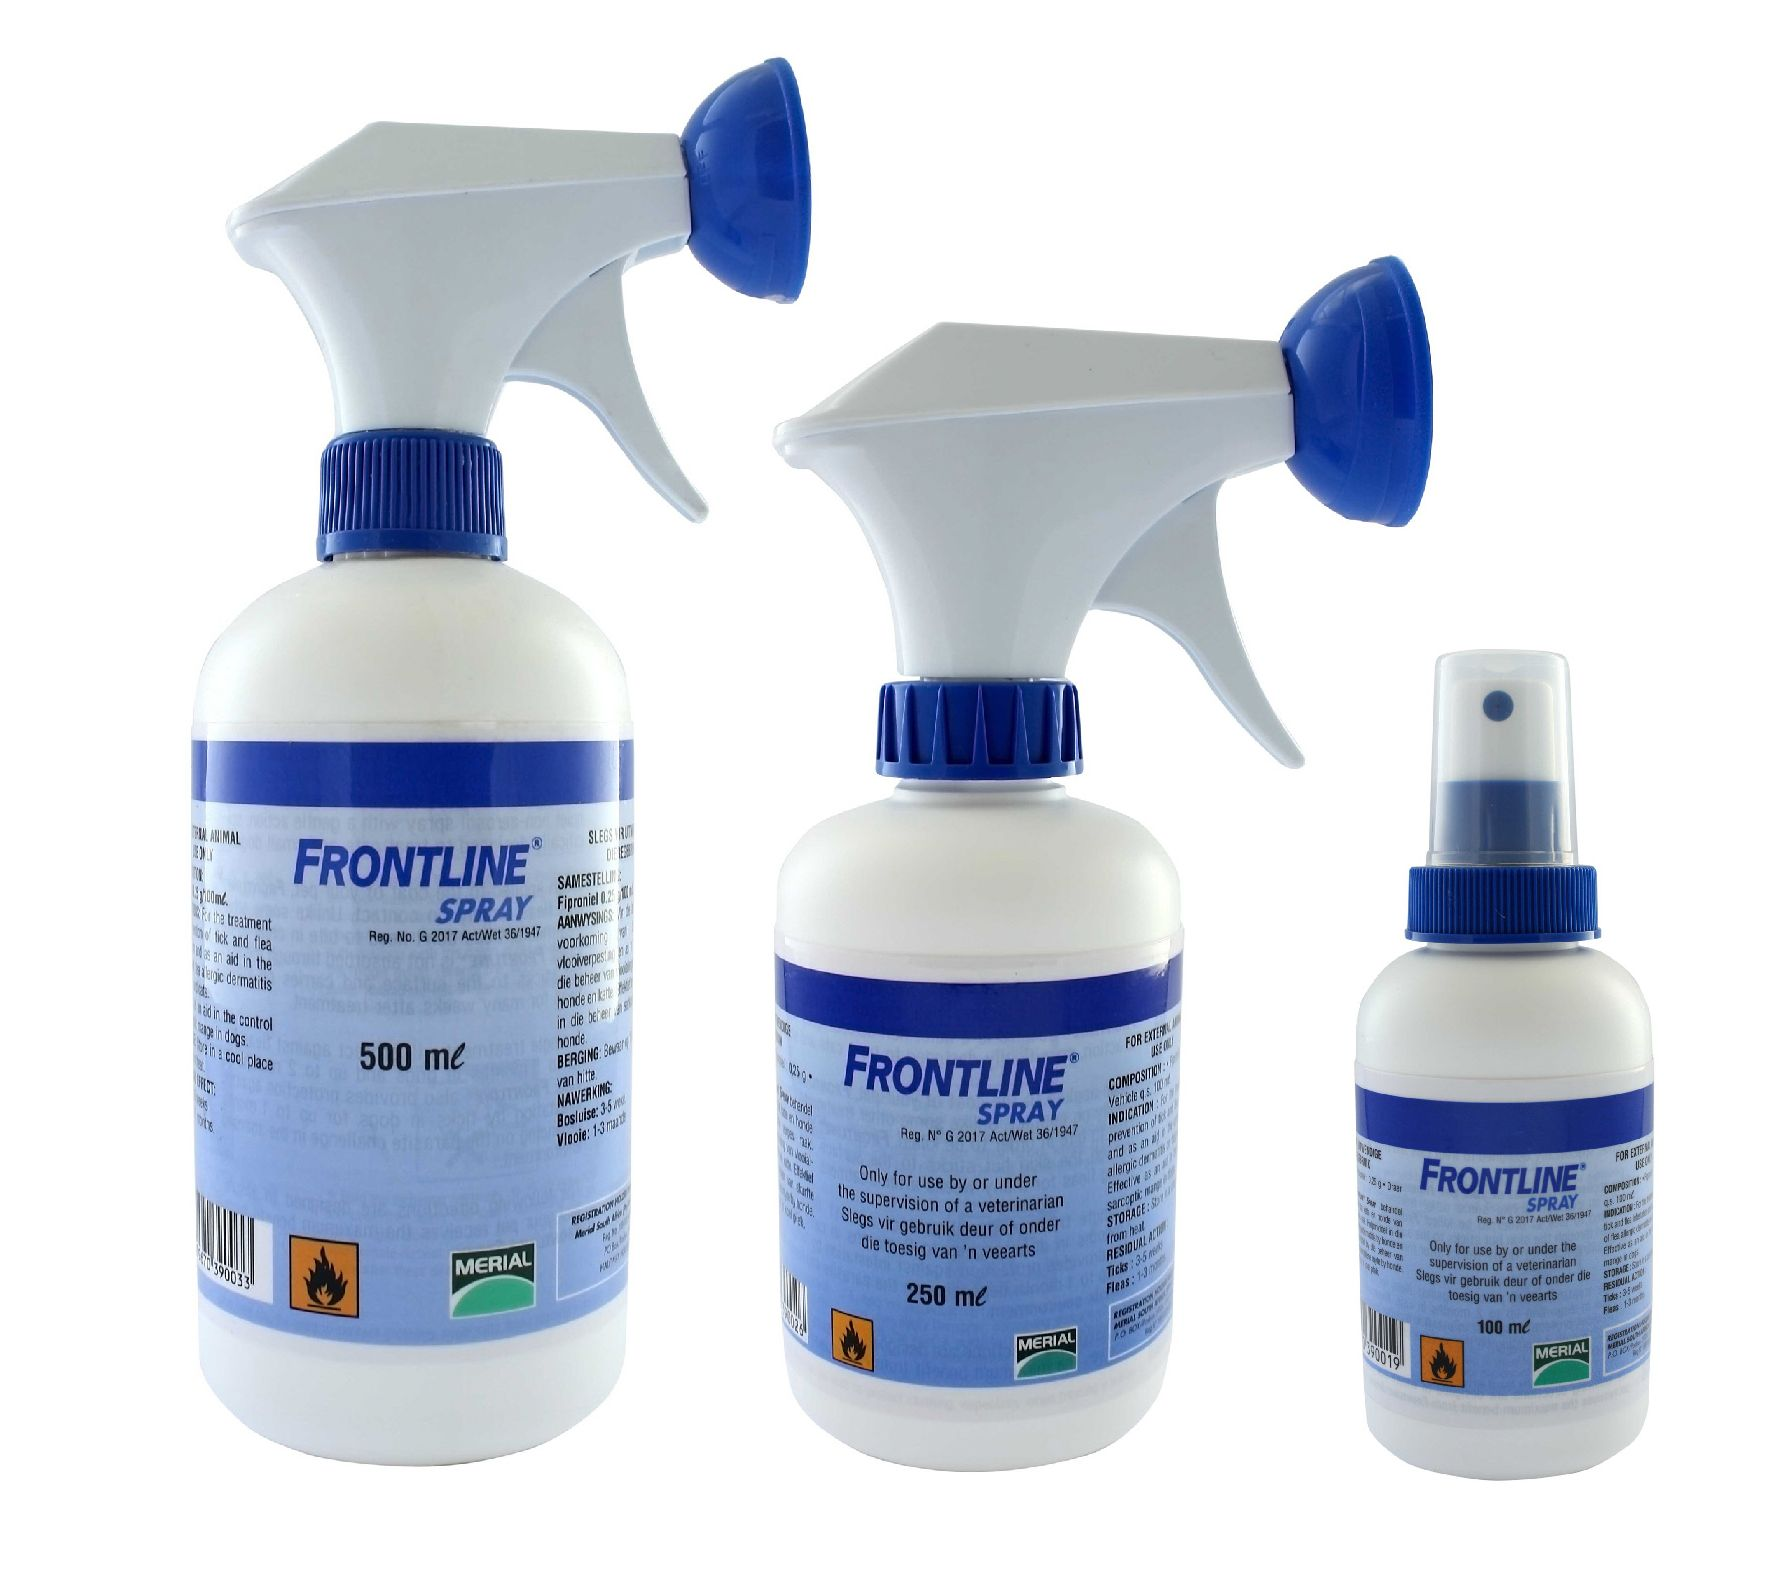 Frontline Spray - Made in France